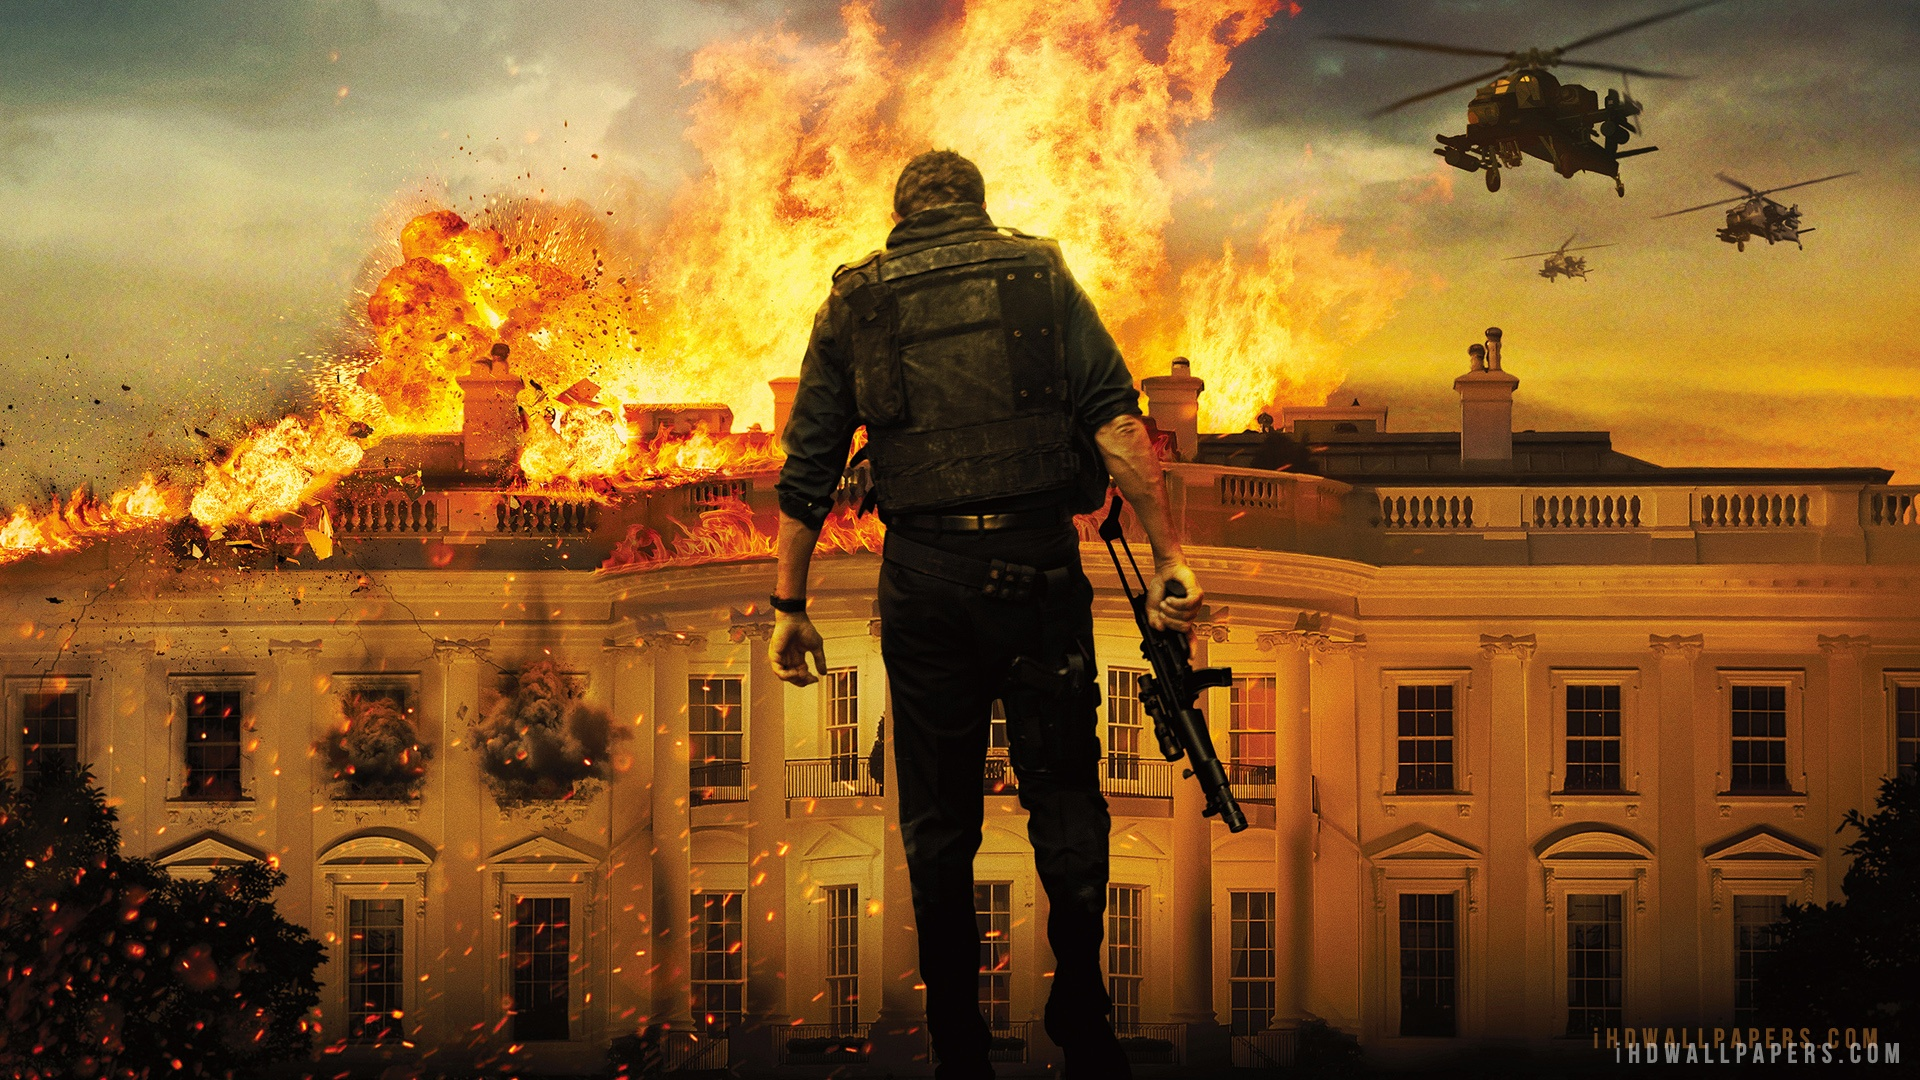 Olympus Has Fallen Movie HD Wallpaper   iHD Wallpapers 1920x1080